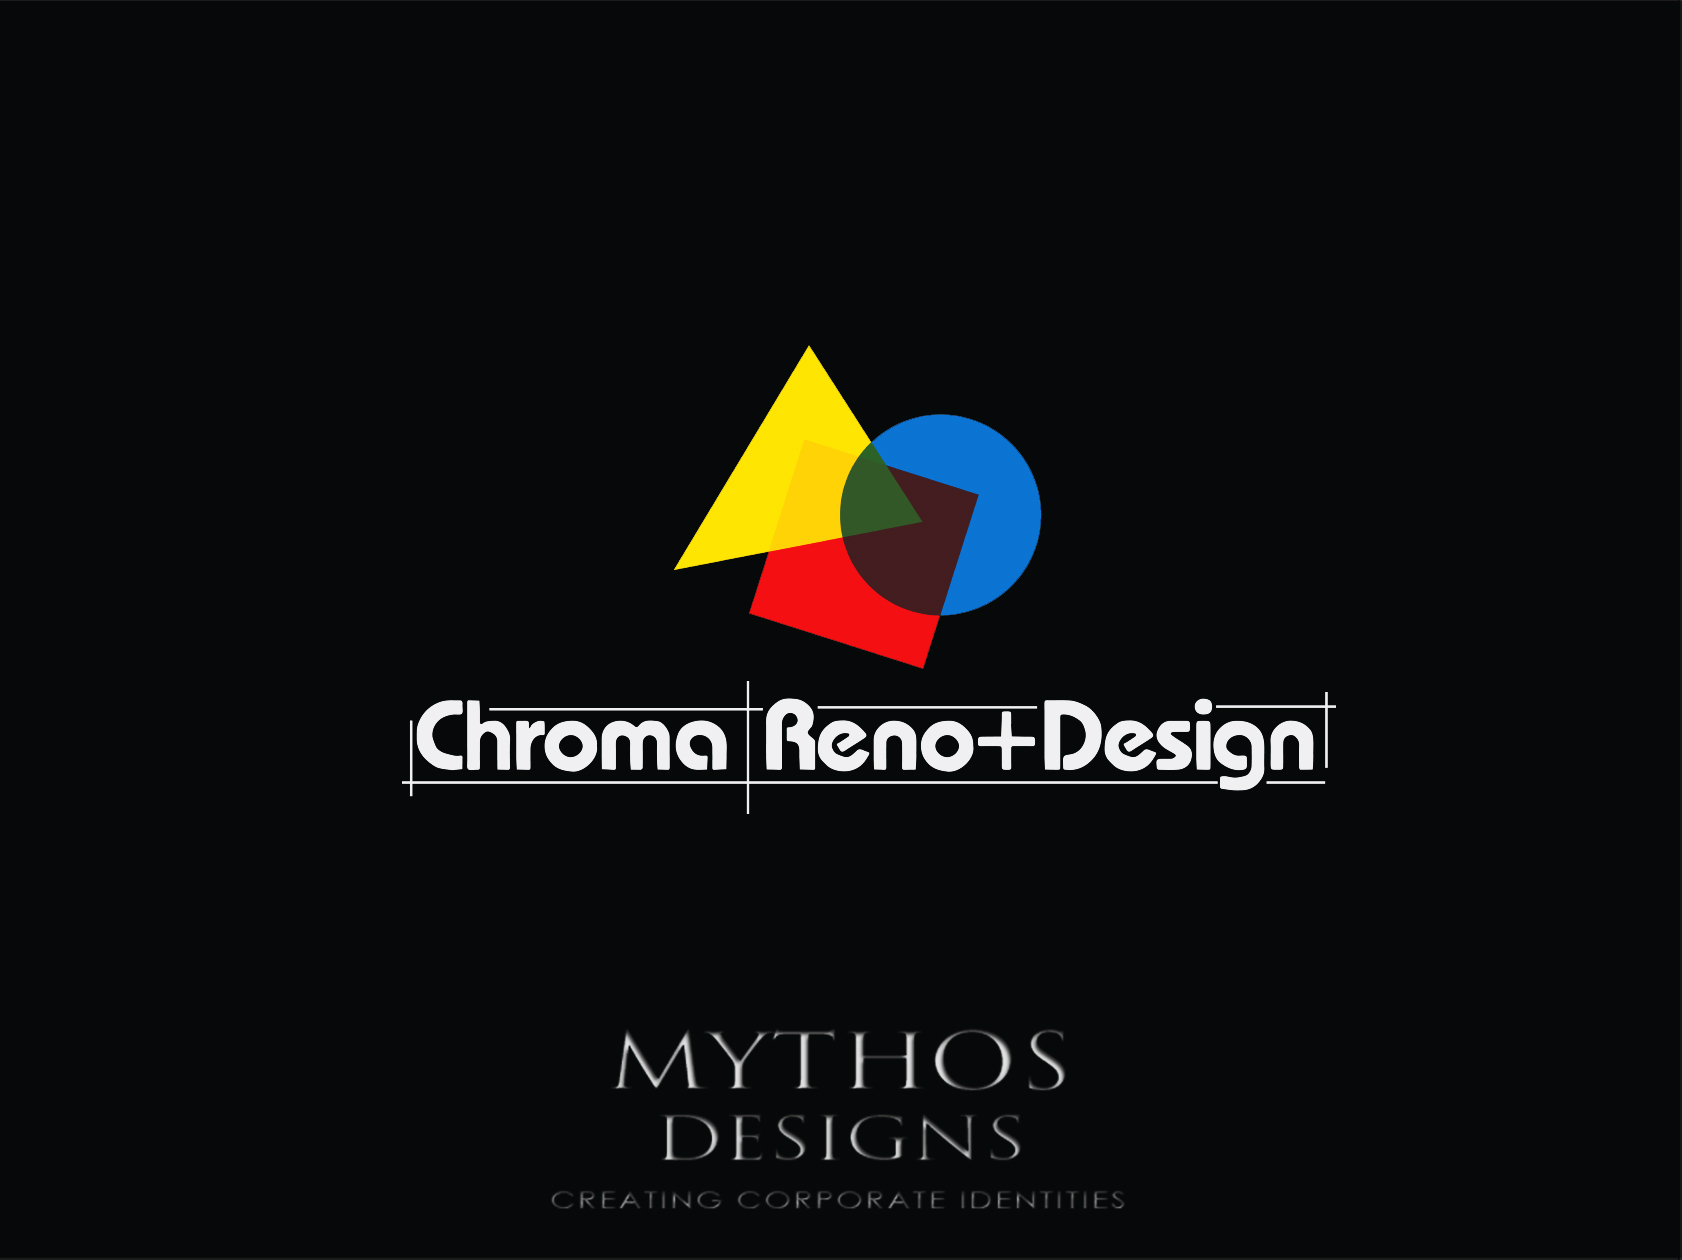 Logo Design by Mythos Designs - Entry No. 282 in the Logo Design Contest Inspiring Logo Design for Chroma Reno+Design.